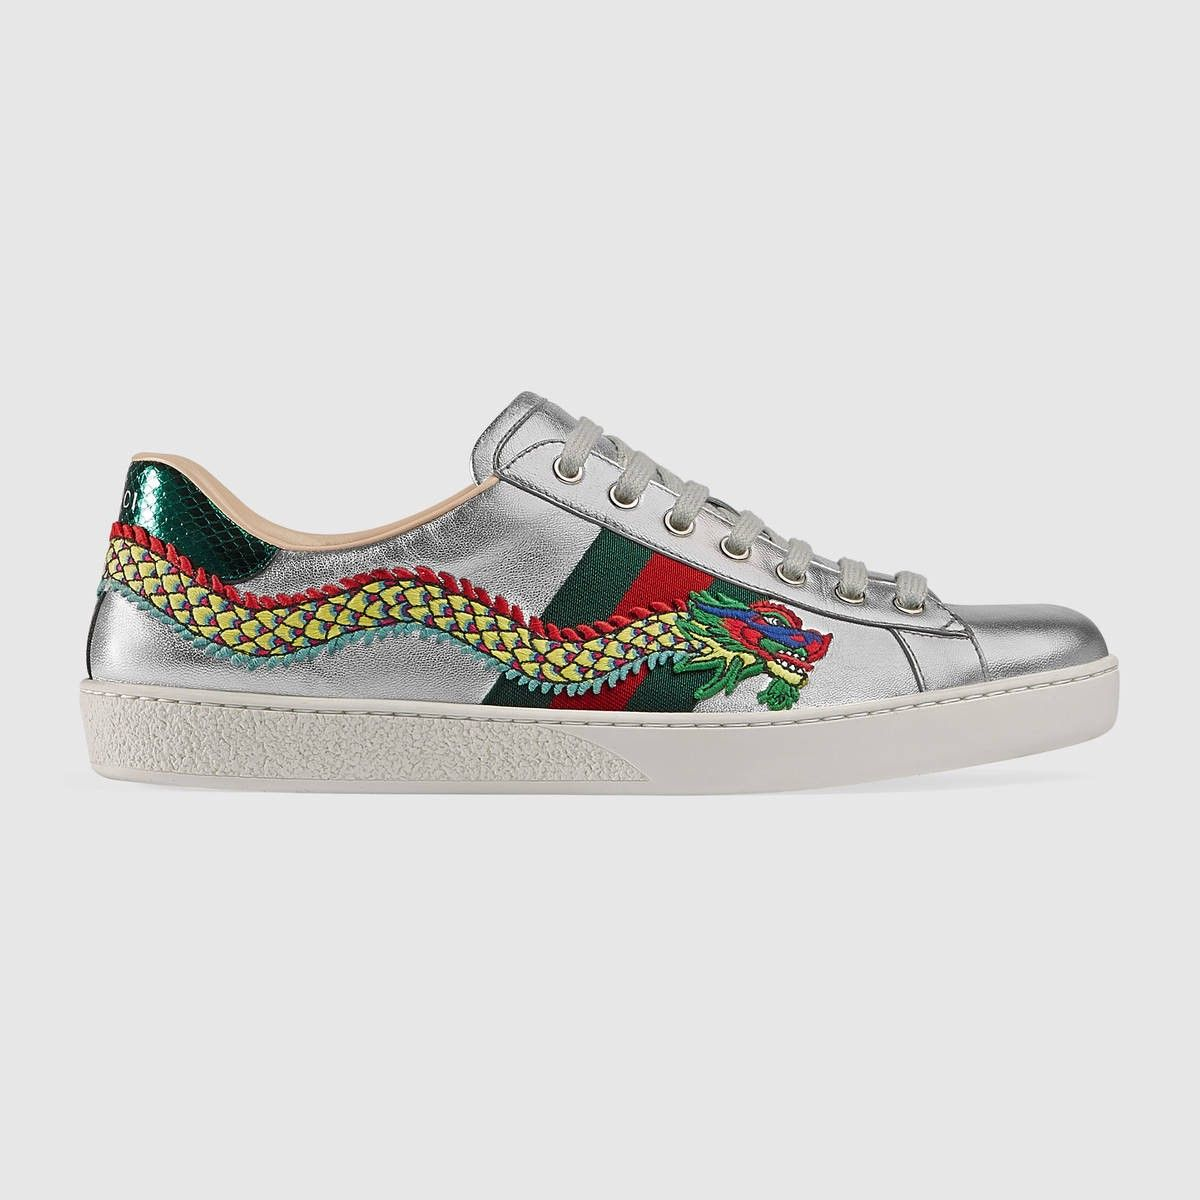 46b9cba142f GUCCI Ace embroidered sneaker - silver leather.  gucci  shoes ...